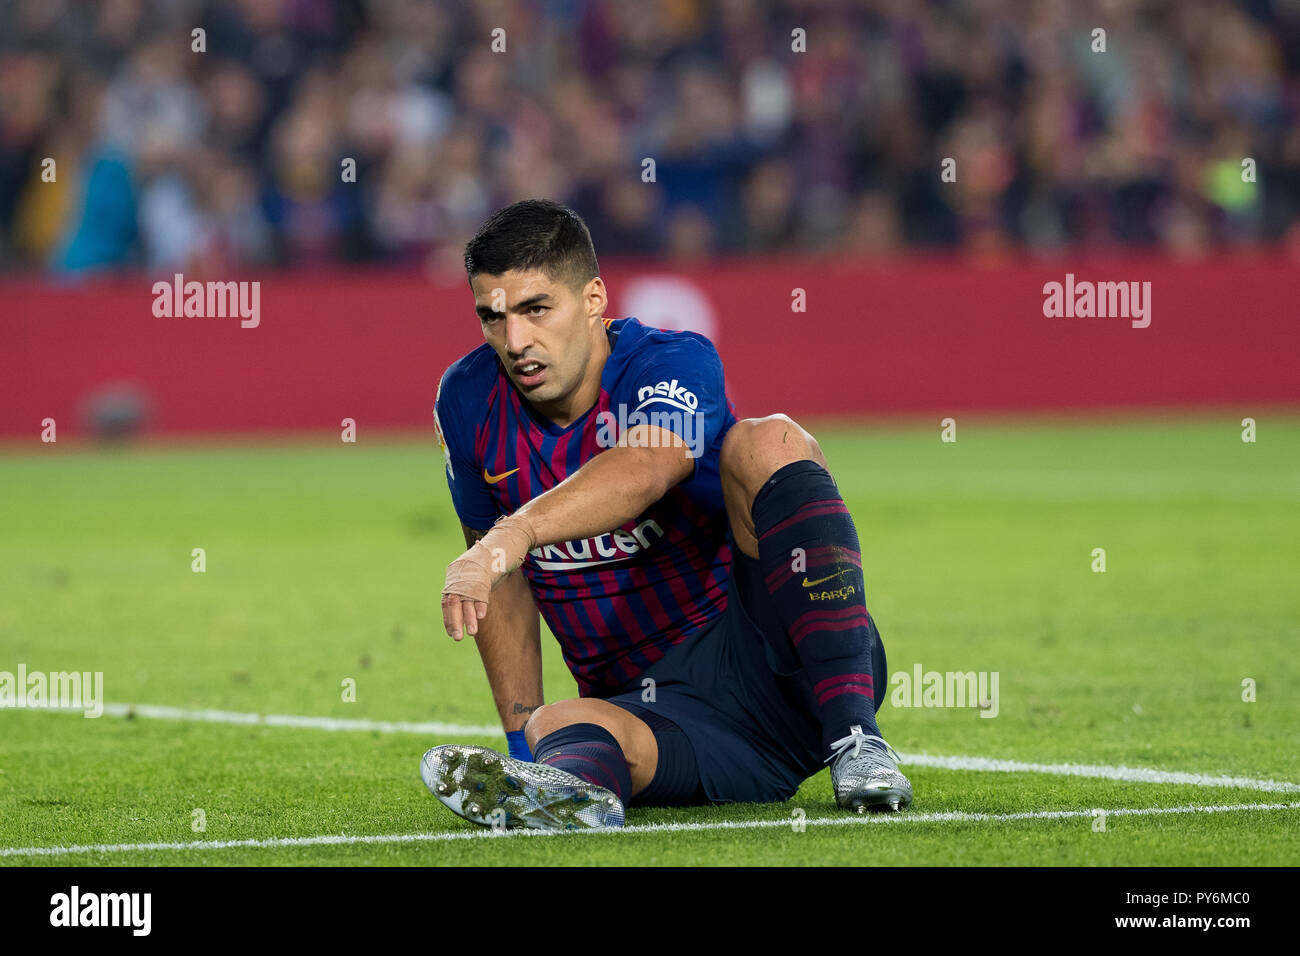 October 20th; Luis Suarez of FC Barcelona during the 2018/2019 LaLiga Santander Round 8 game between FC Barcelona and Sevilla FC at Camp Nou on Octobe - Stock Image